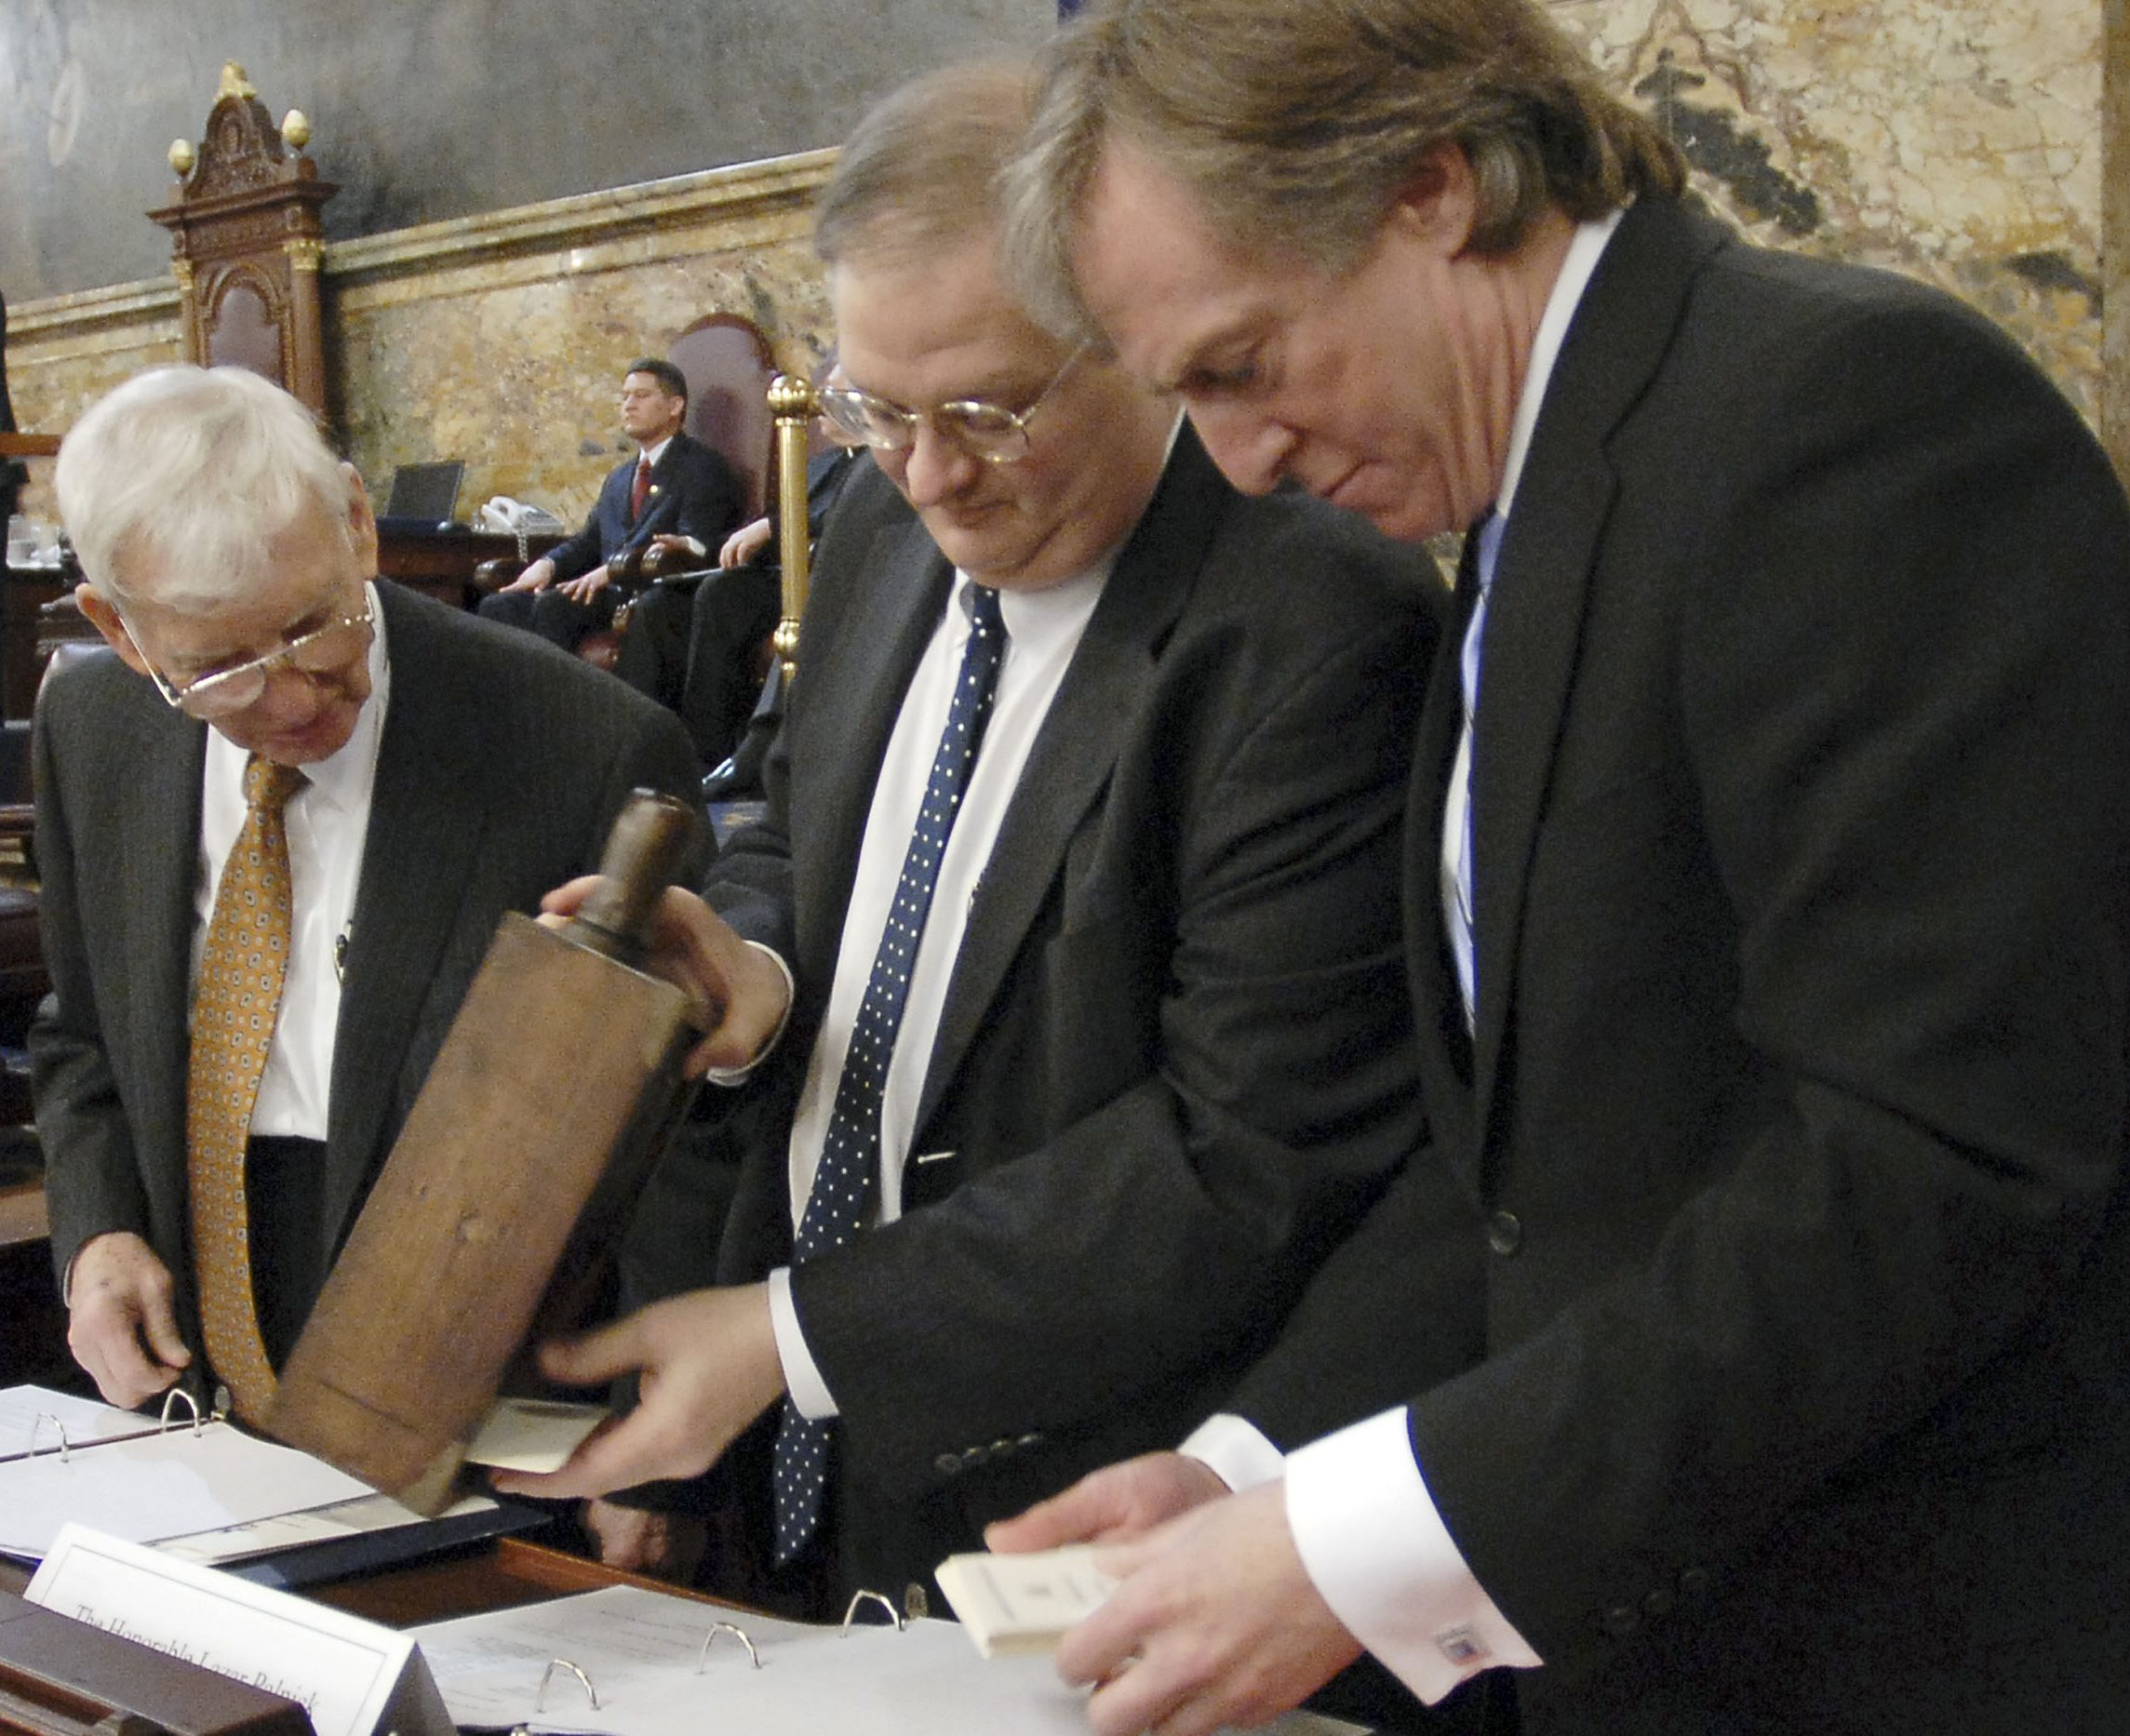 people archives arkansas money politics no new electoral college fountain pen for lazar palnick in 2016